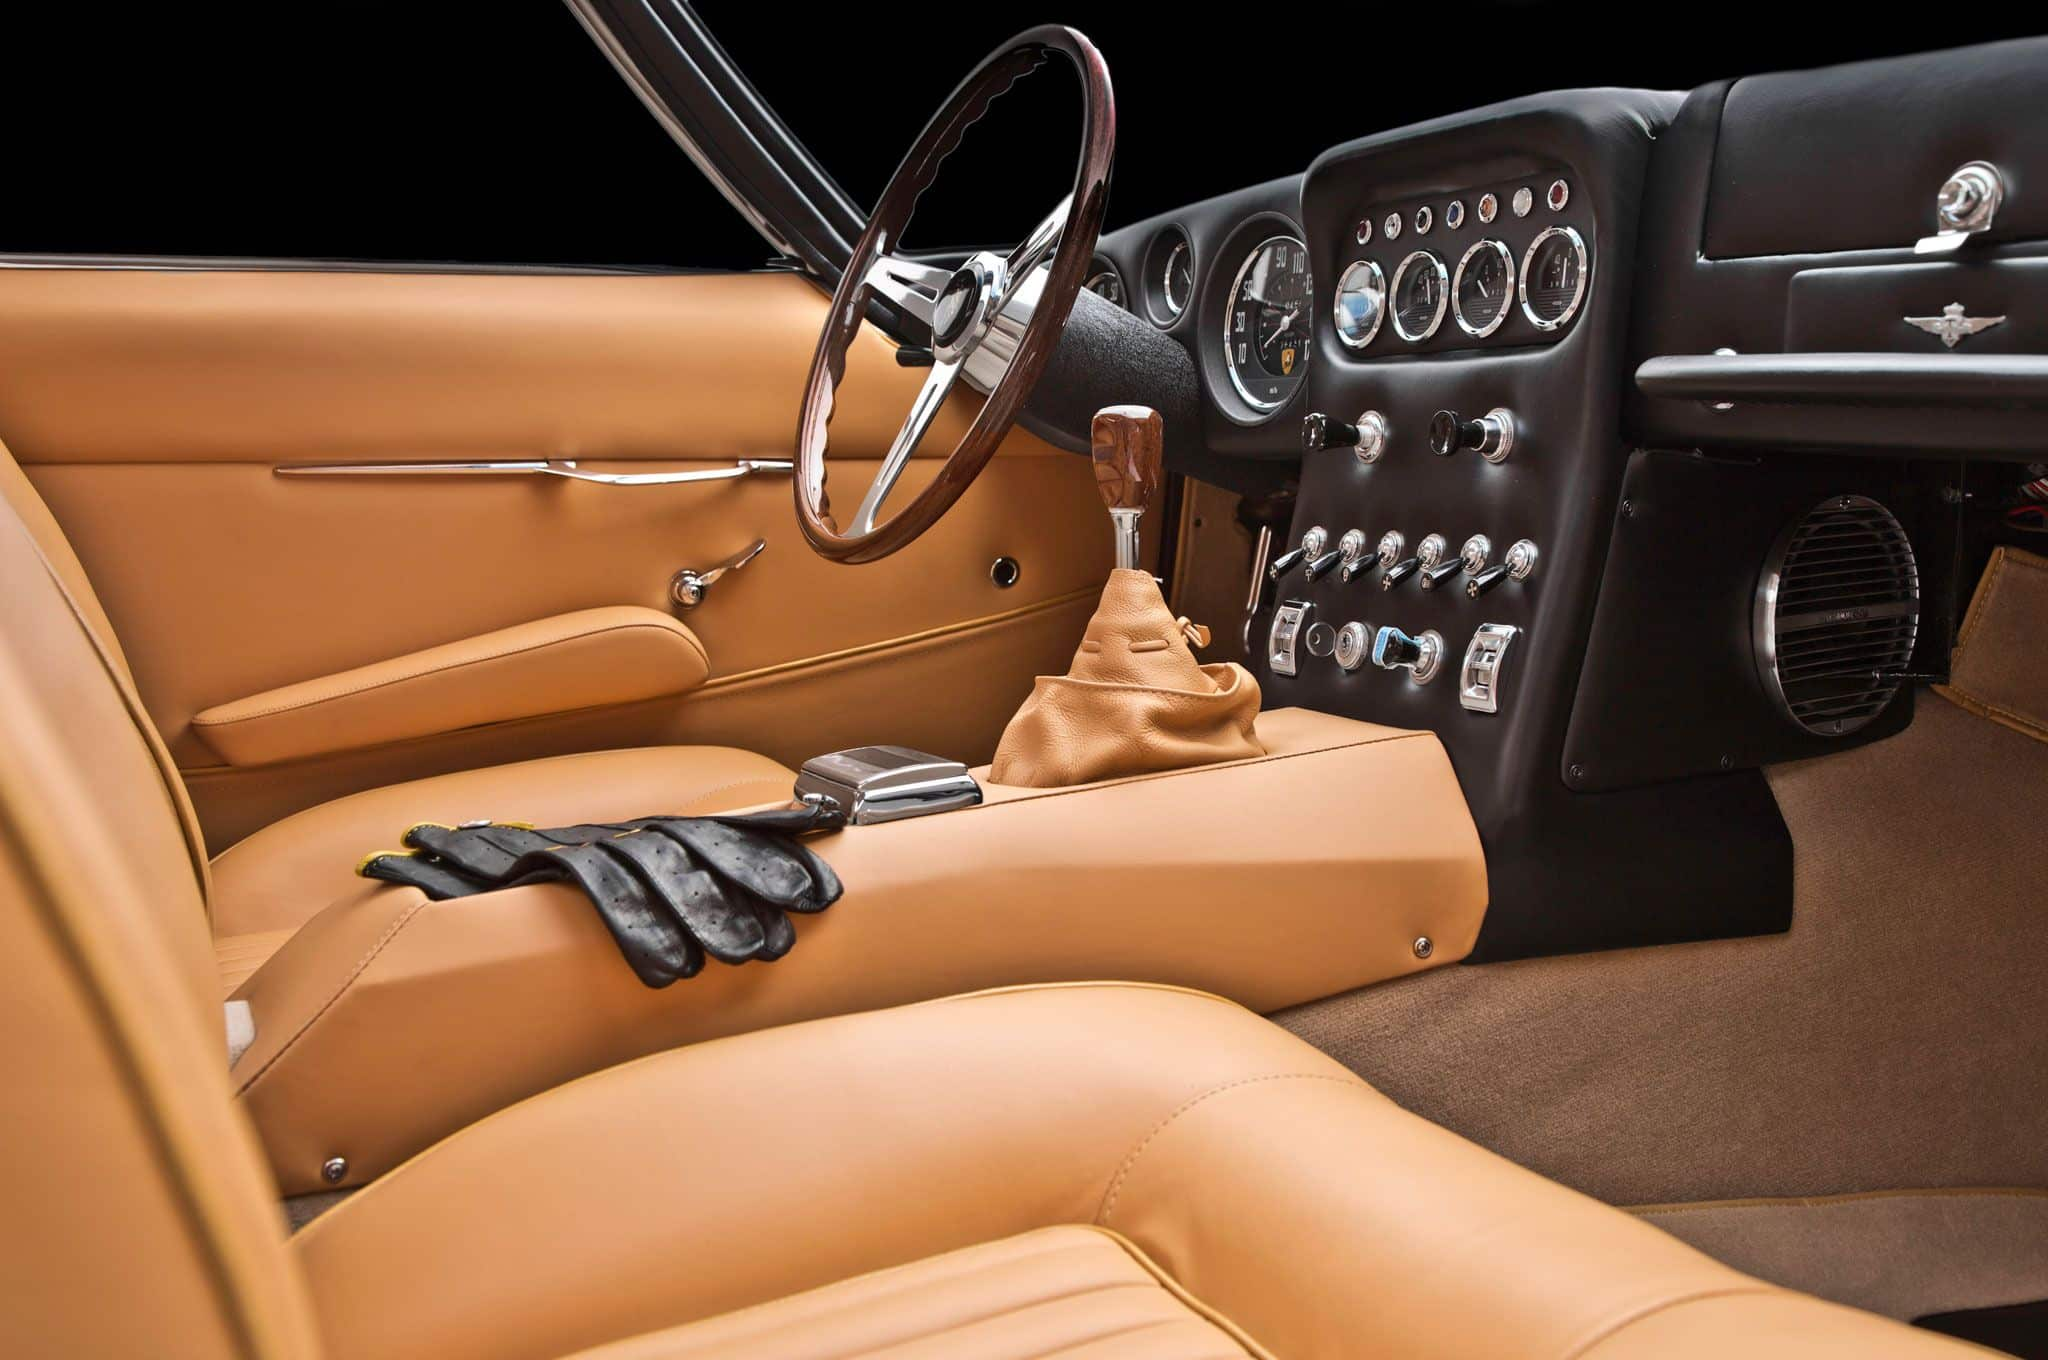 Carlassics Top 5 Car Interior Designs Carlassic